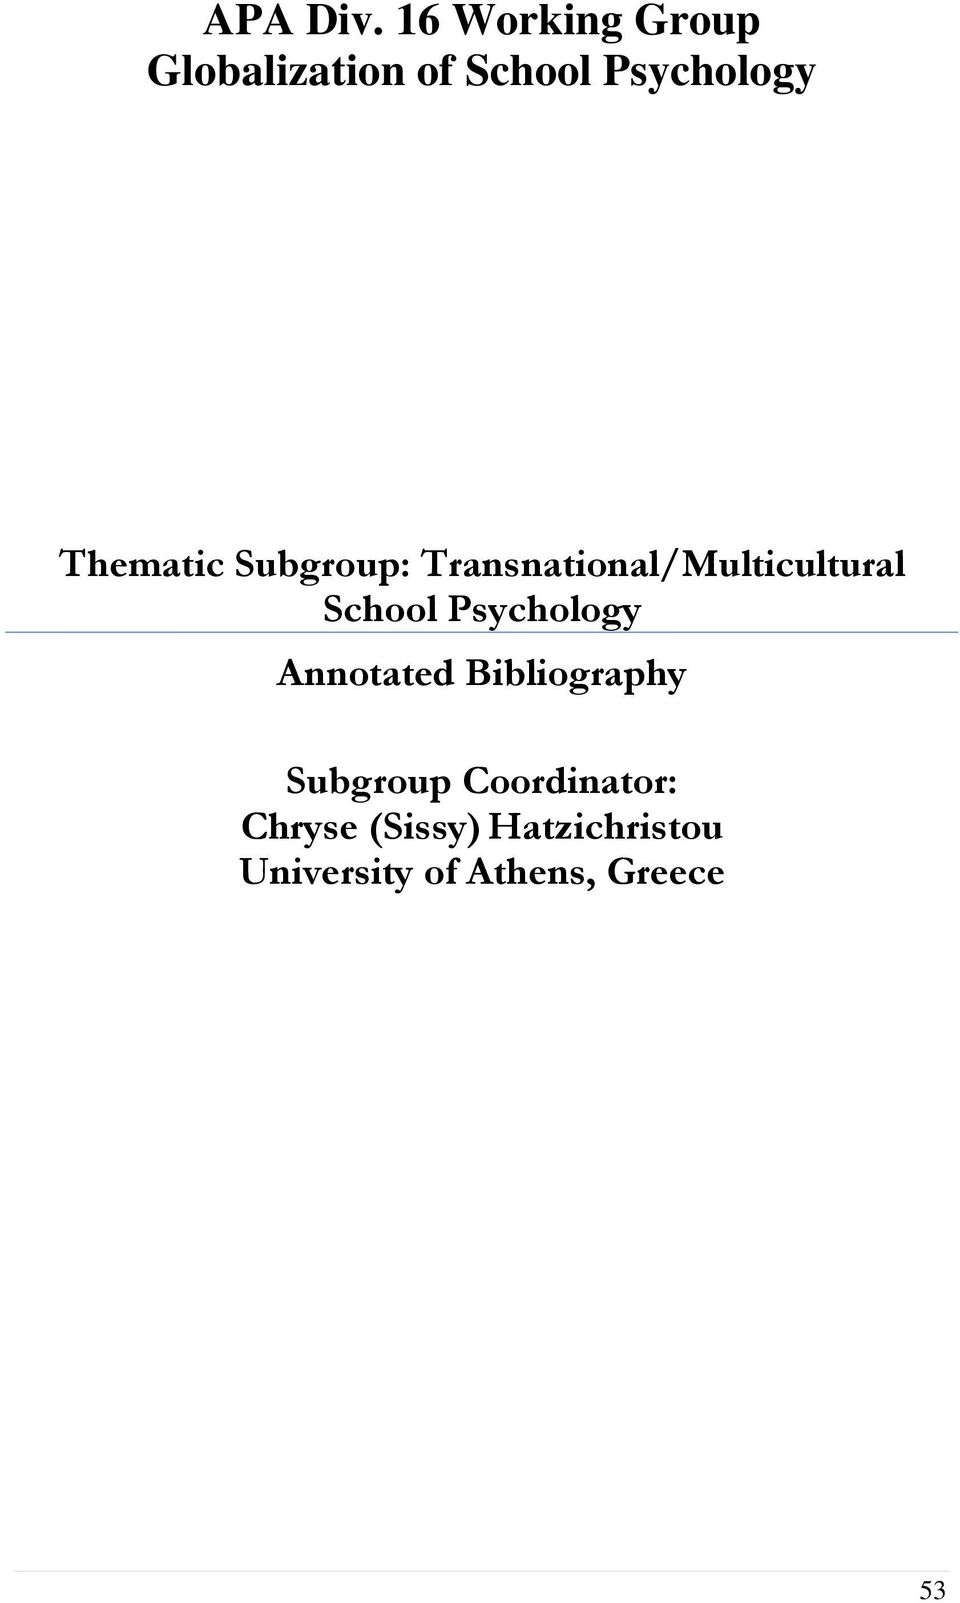 Thematic Subgroup: Transnational/Multicultural School